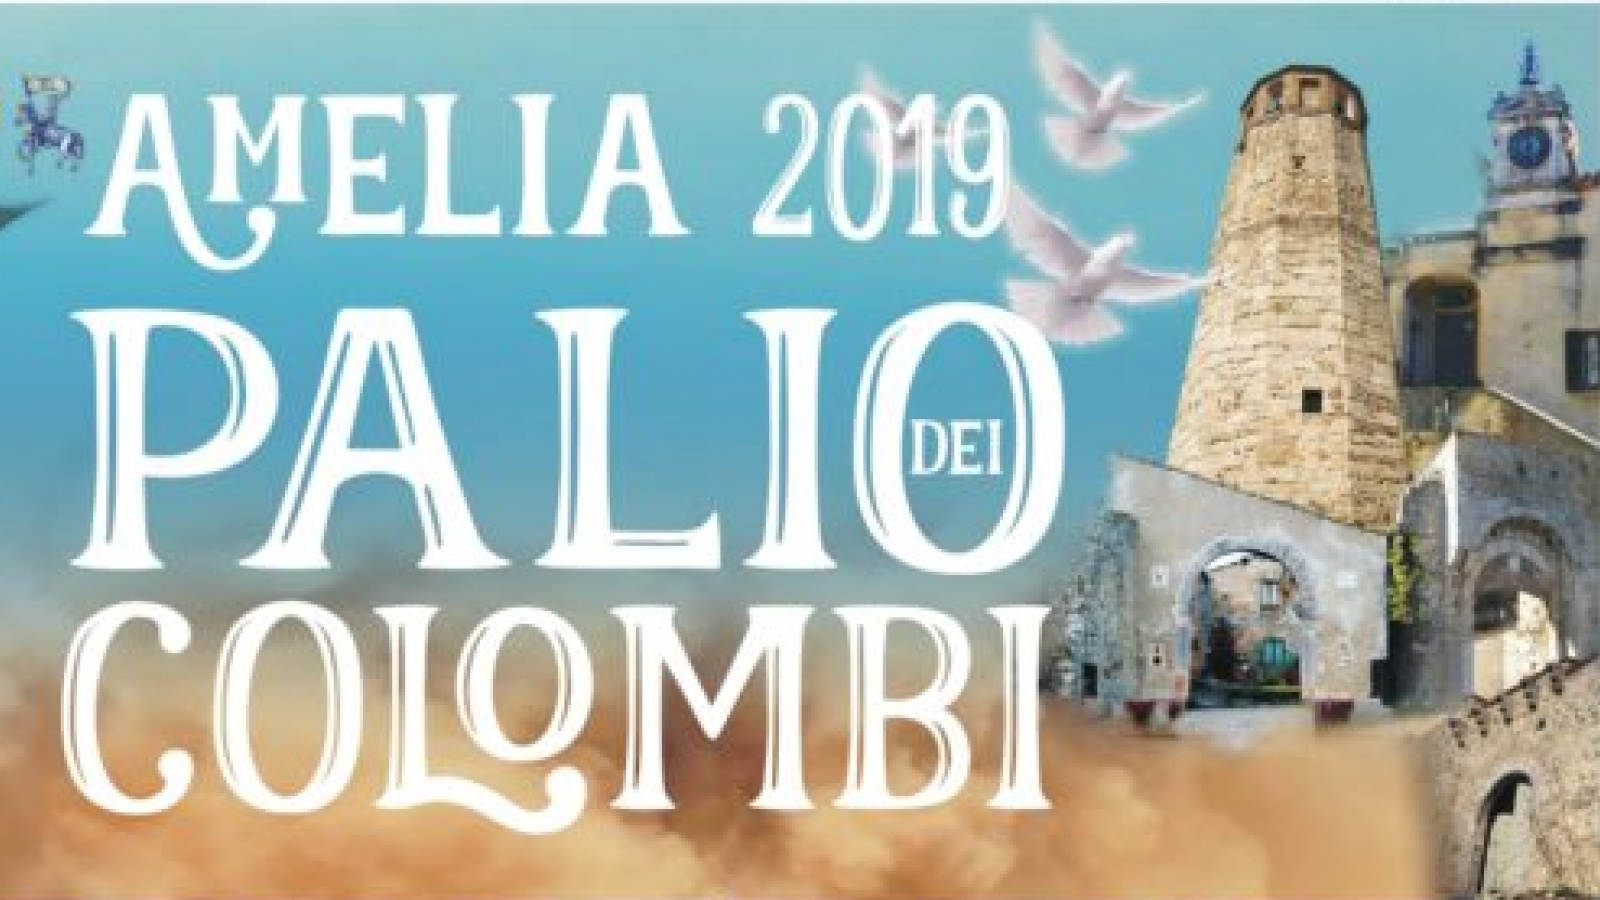 PALIO DEI COLOMBI: THE EVENTS INSIDE THE MUSEUM